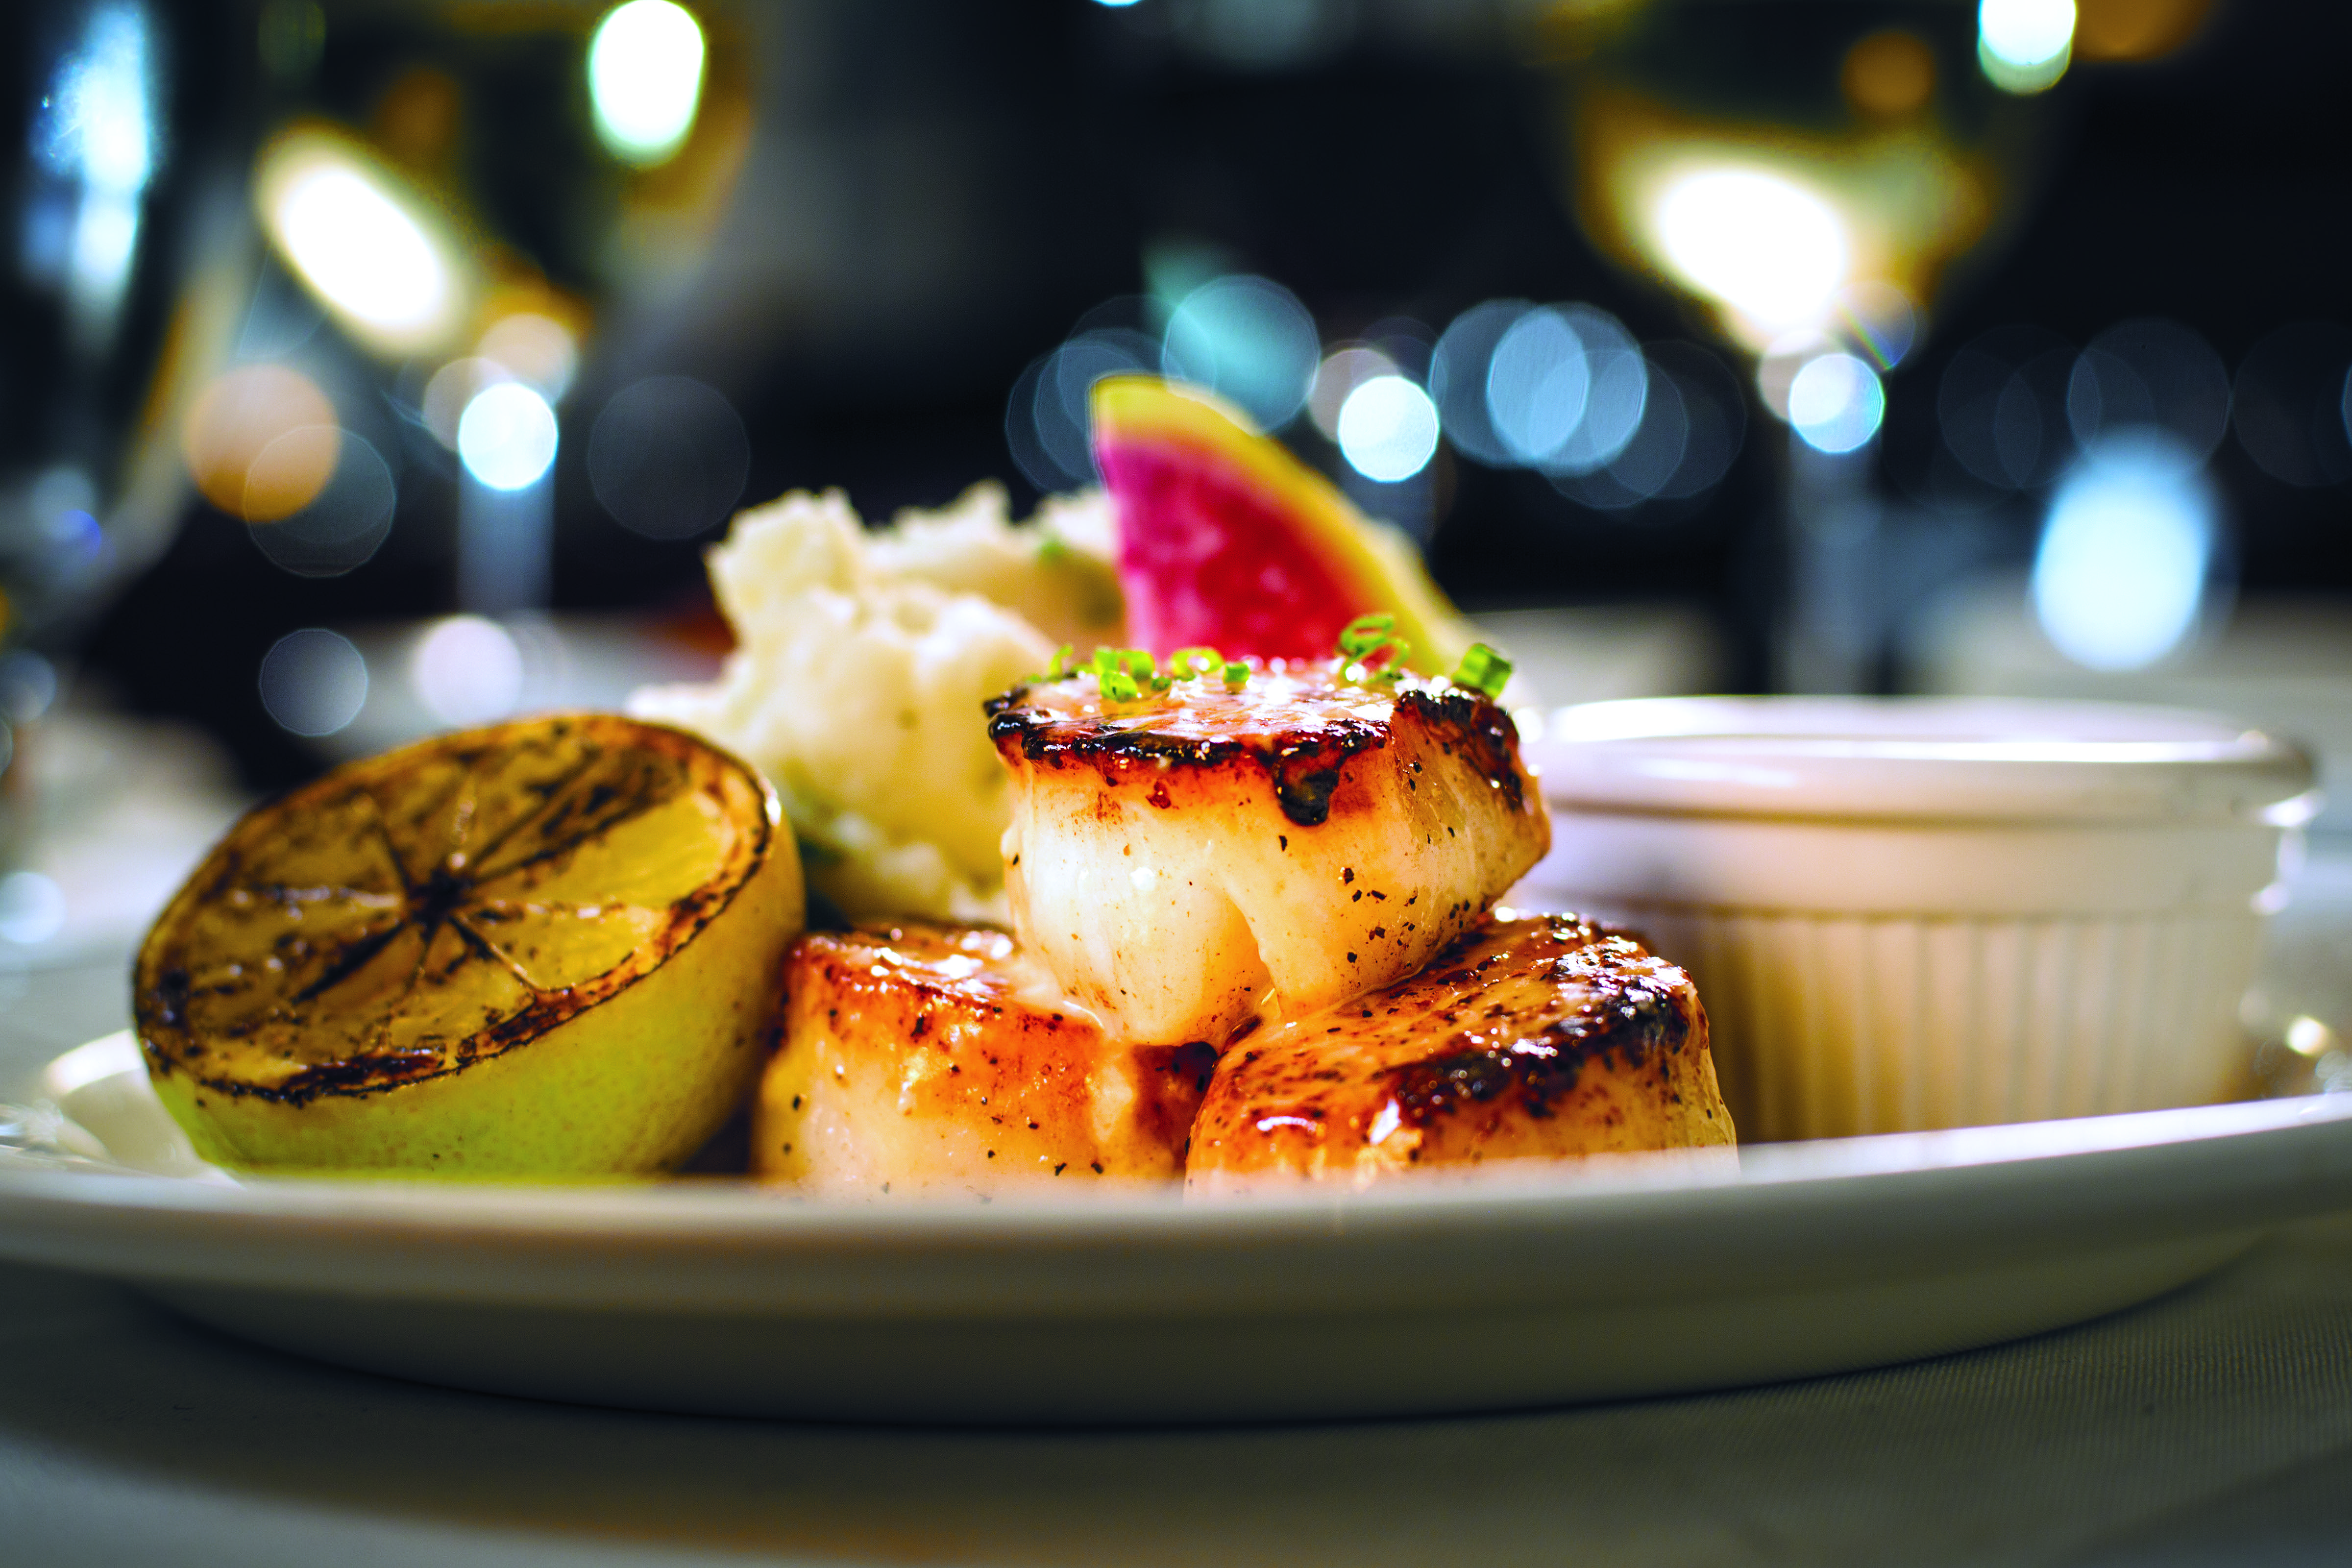 NEW ENGLAND PAN-SEARED SCALLOPS garnished with a lemon